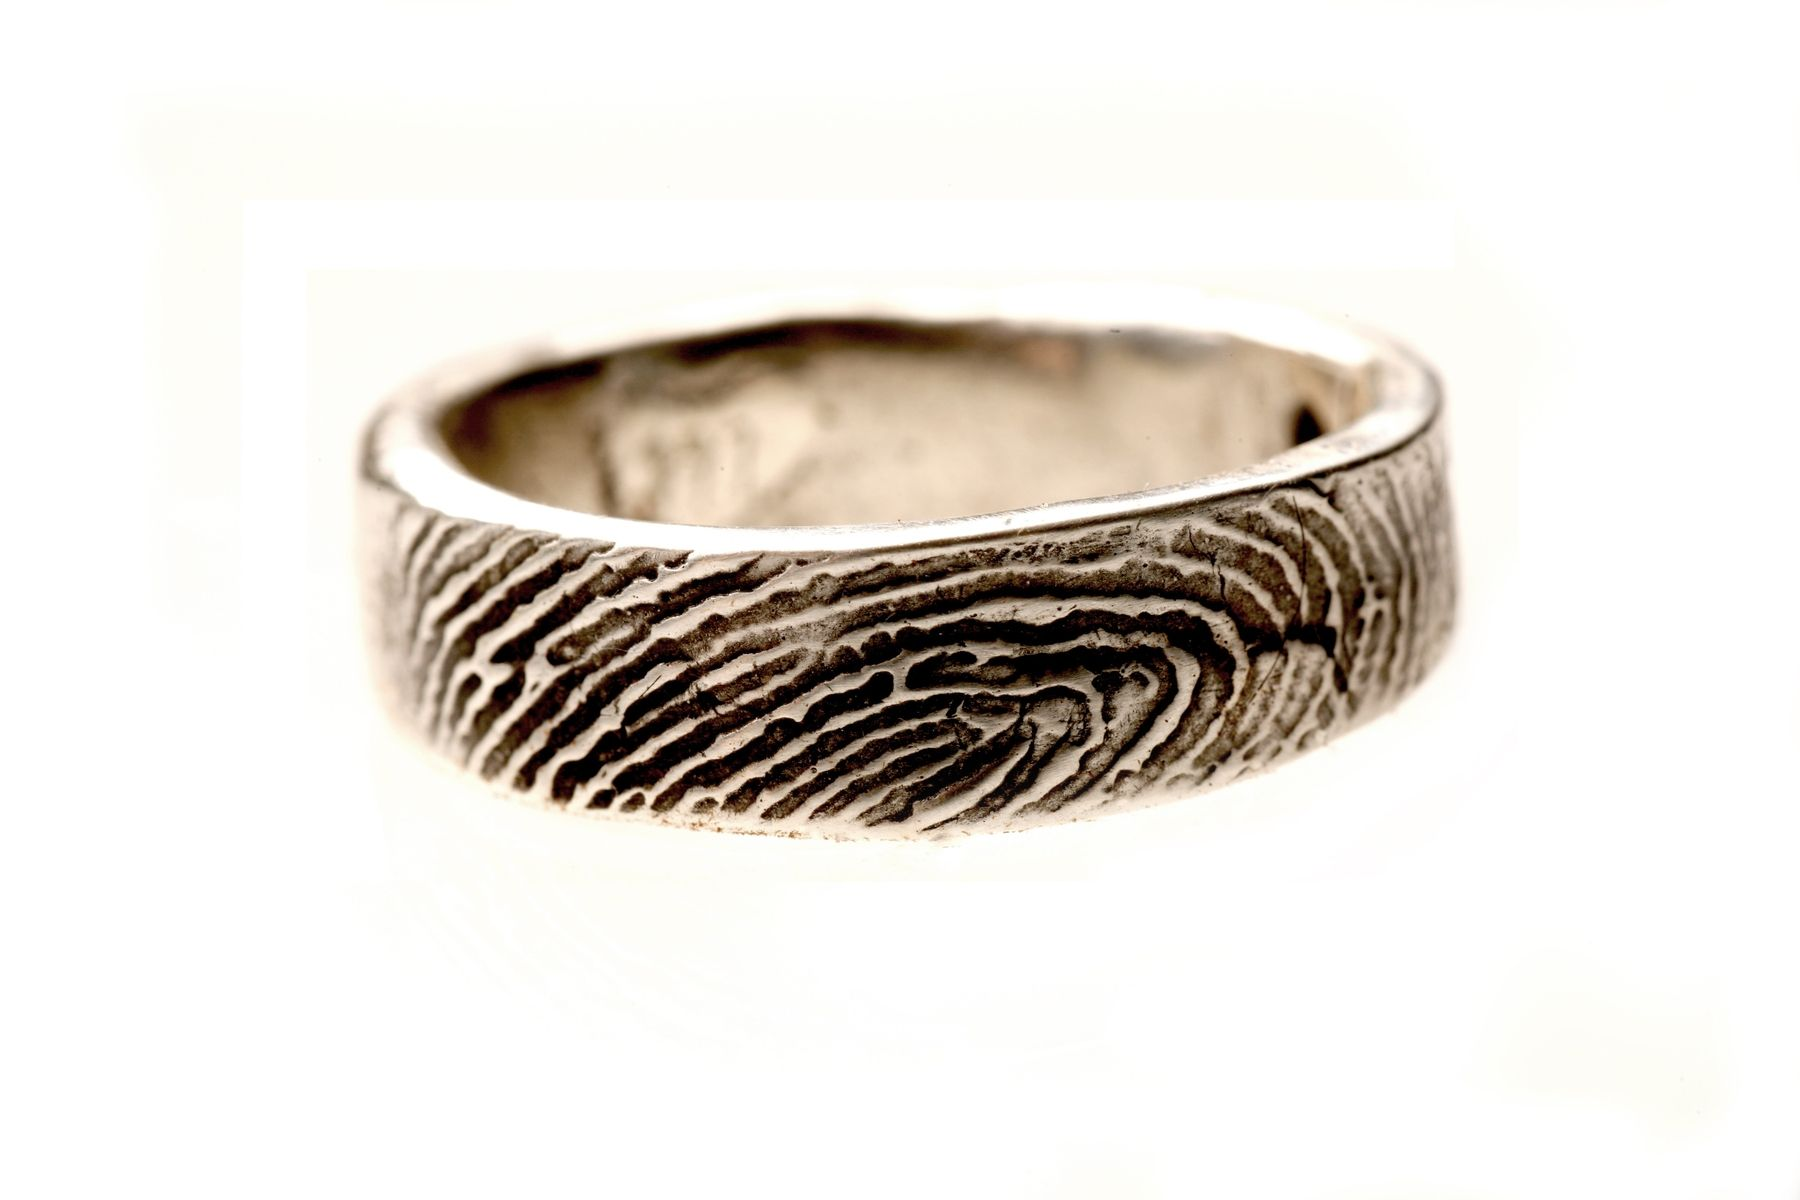 thatsmyimpression custommade wedding fingerprint ring a or ladies sterling s buy order silver to from rings my that com by custom impression mens made